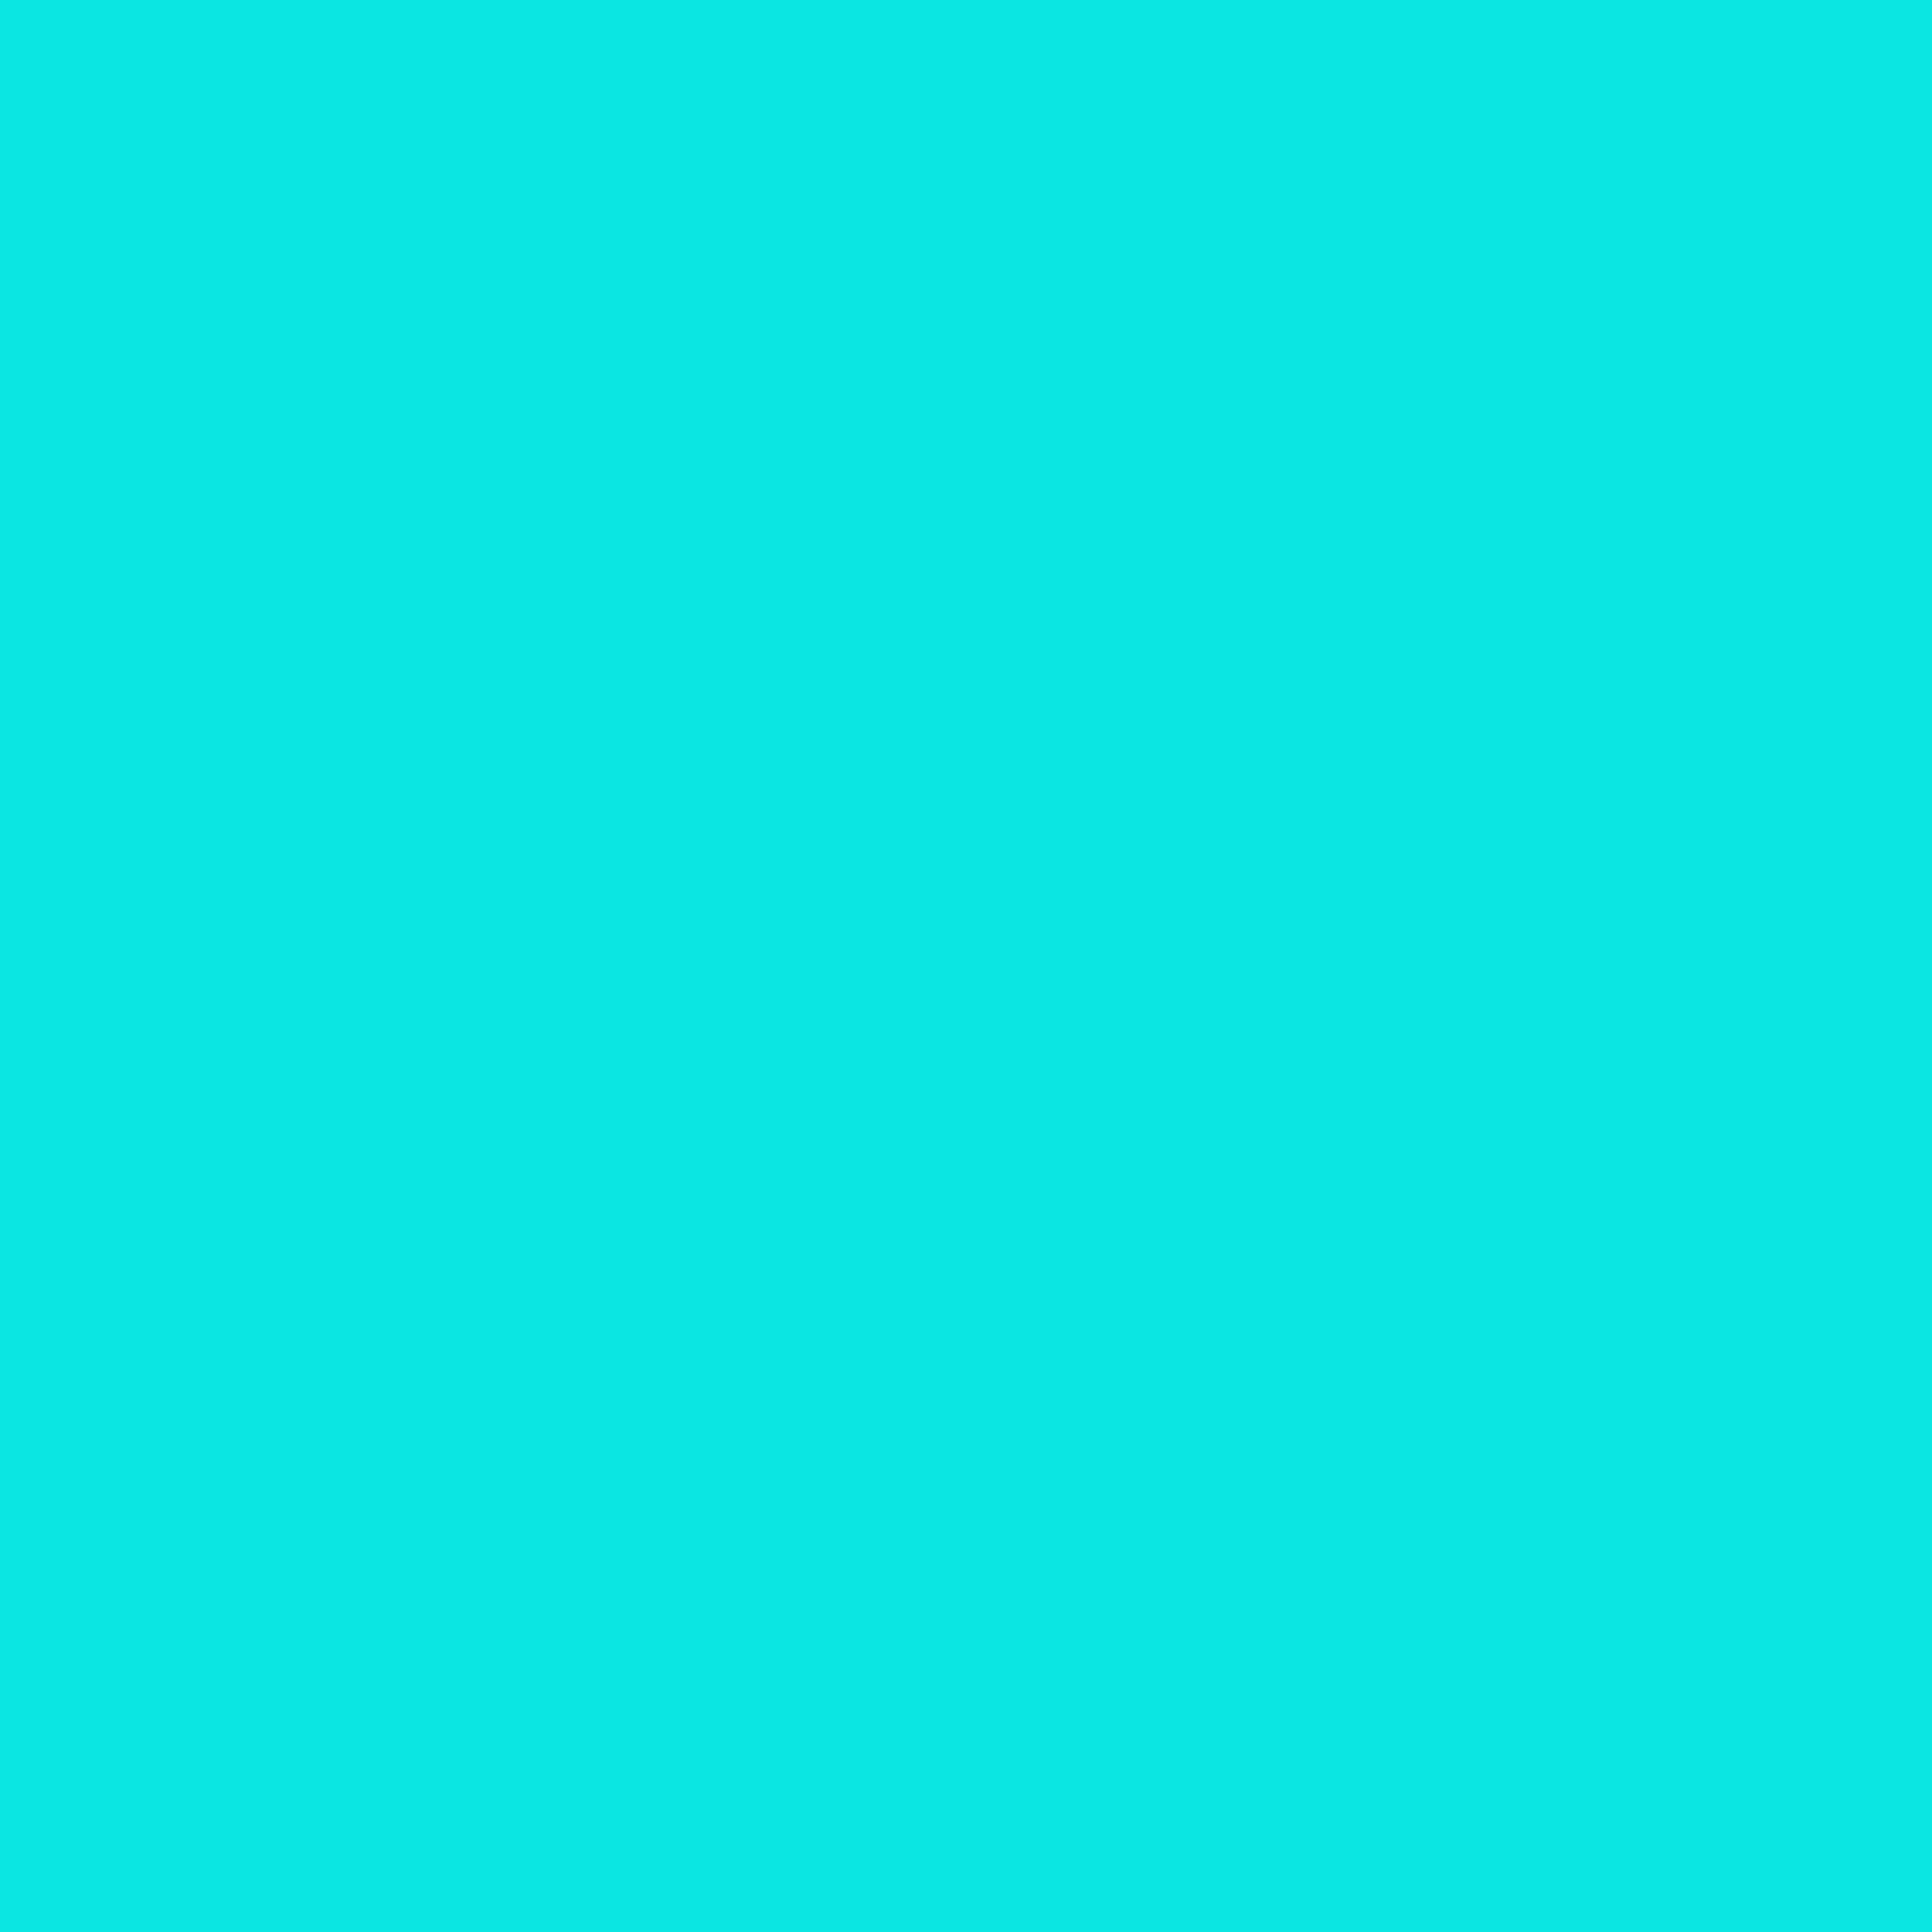 Hd Images Wallpaper Free Download 2048x2048 Bright Turquoise Solid Color Background